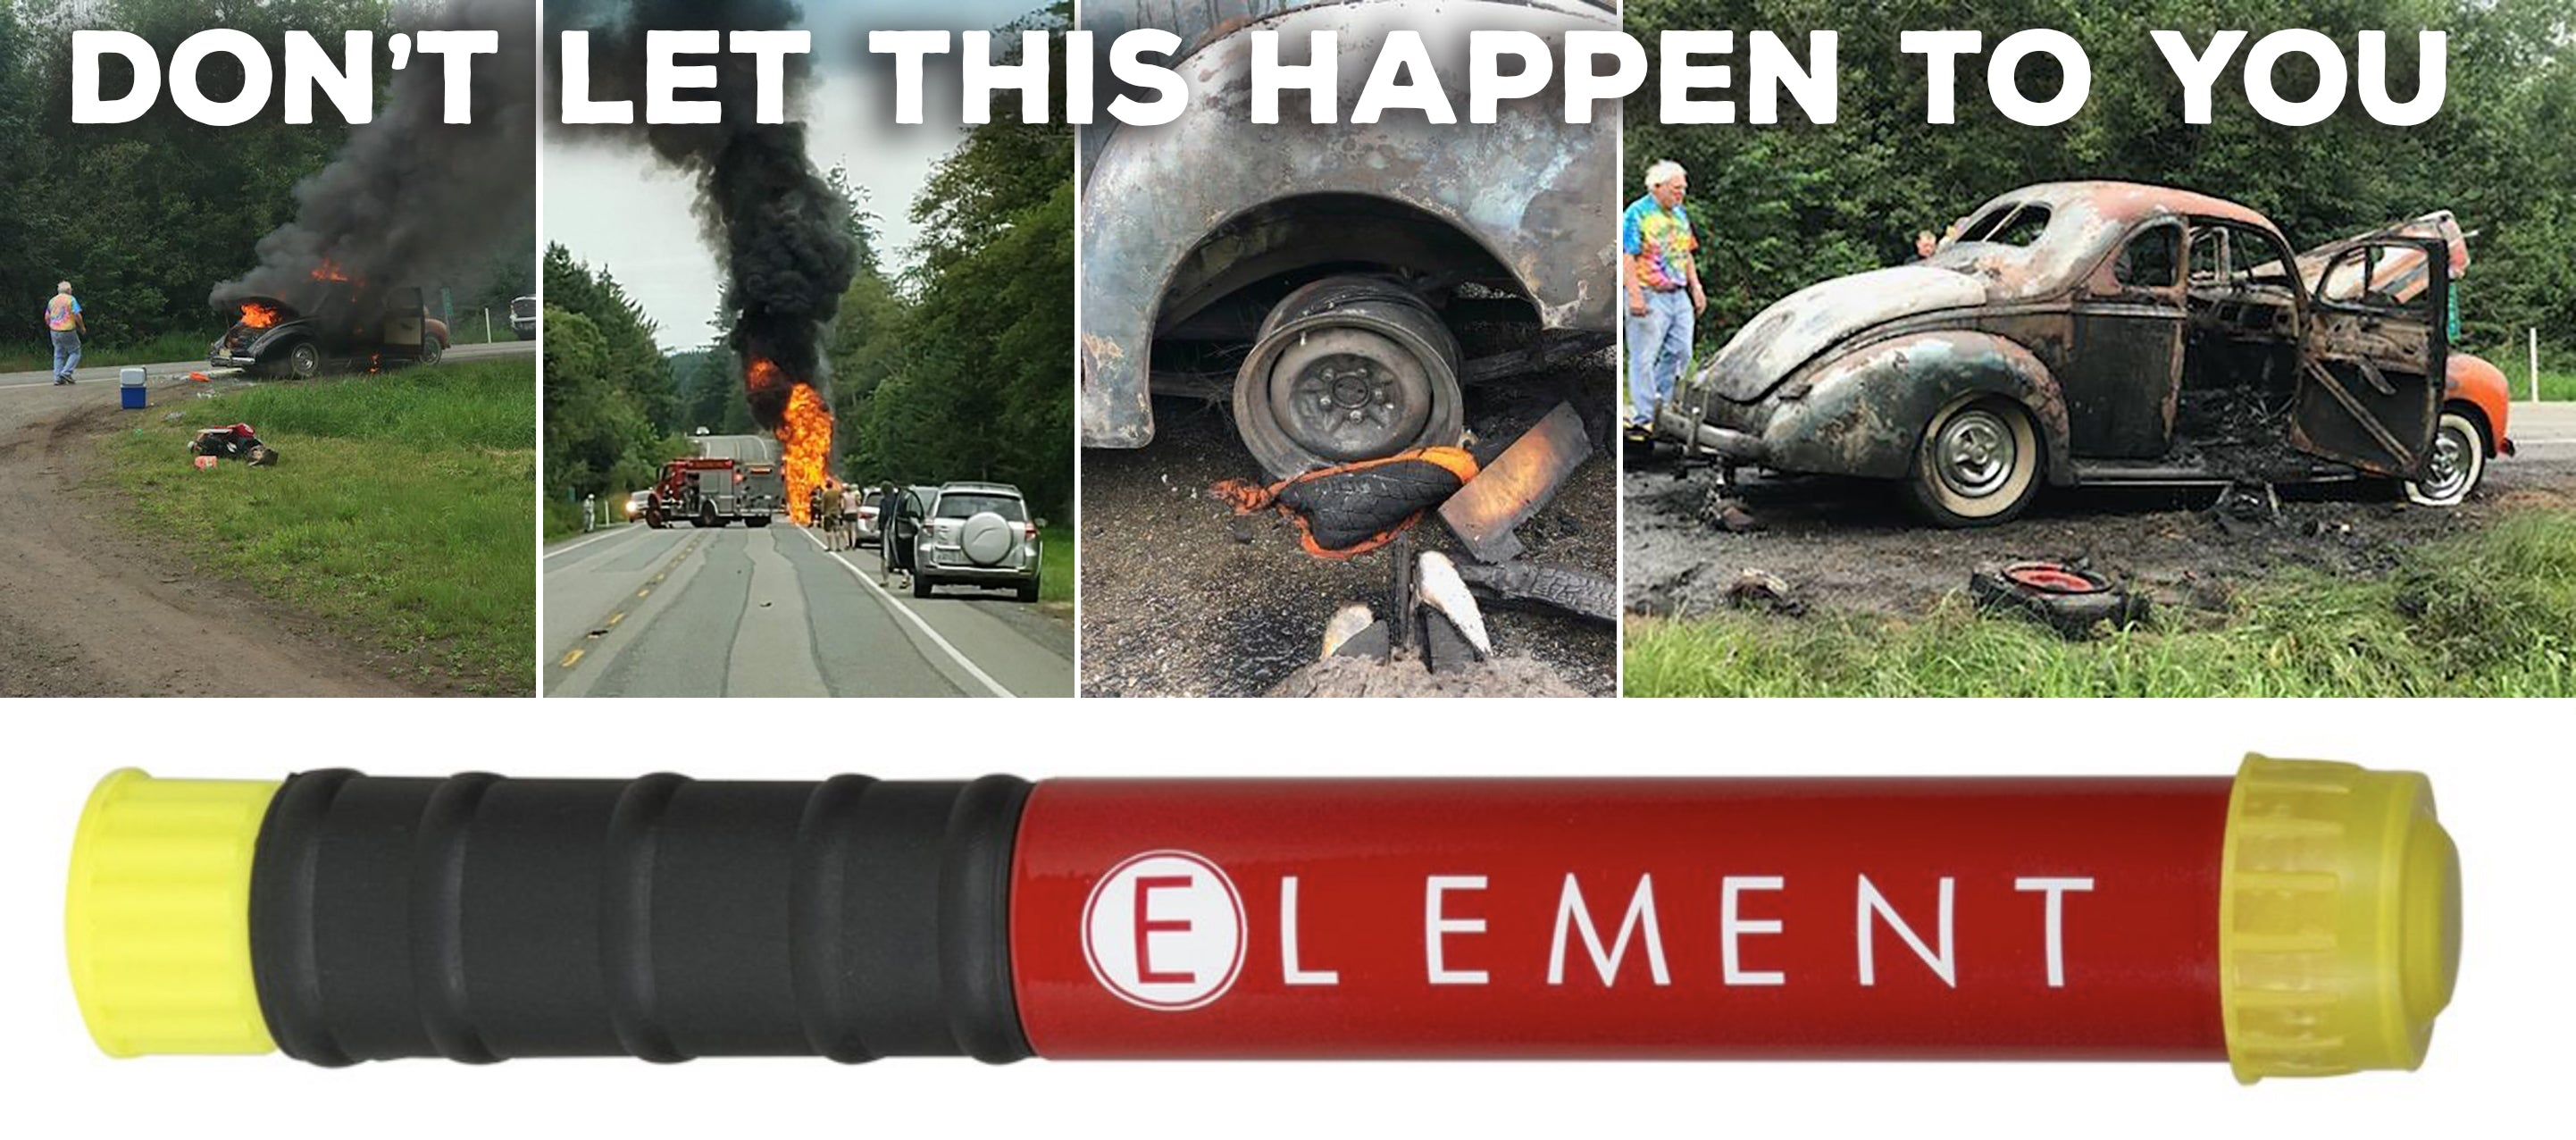 PERFORMANCE IMPROVEMENTS IS YOUR CANADIAN SOURCE FOR ELEMENT FIRE EXTINGUISHERS